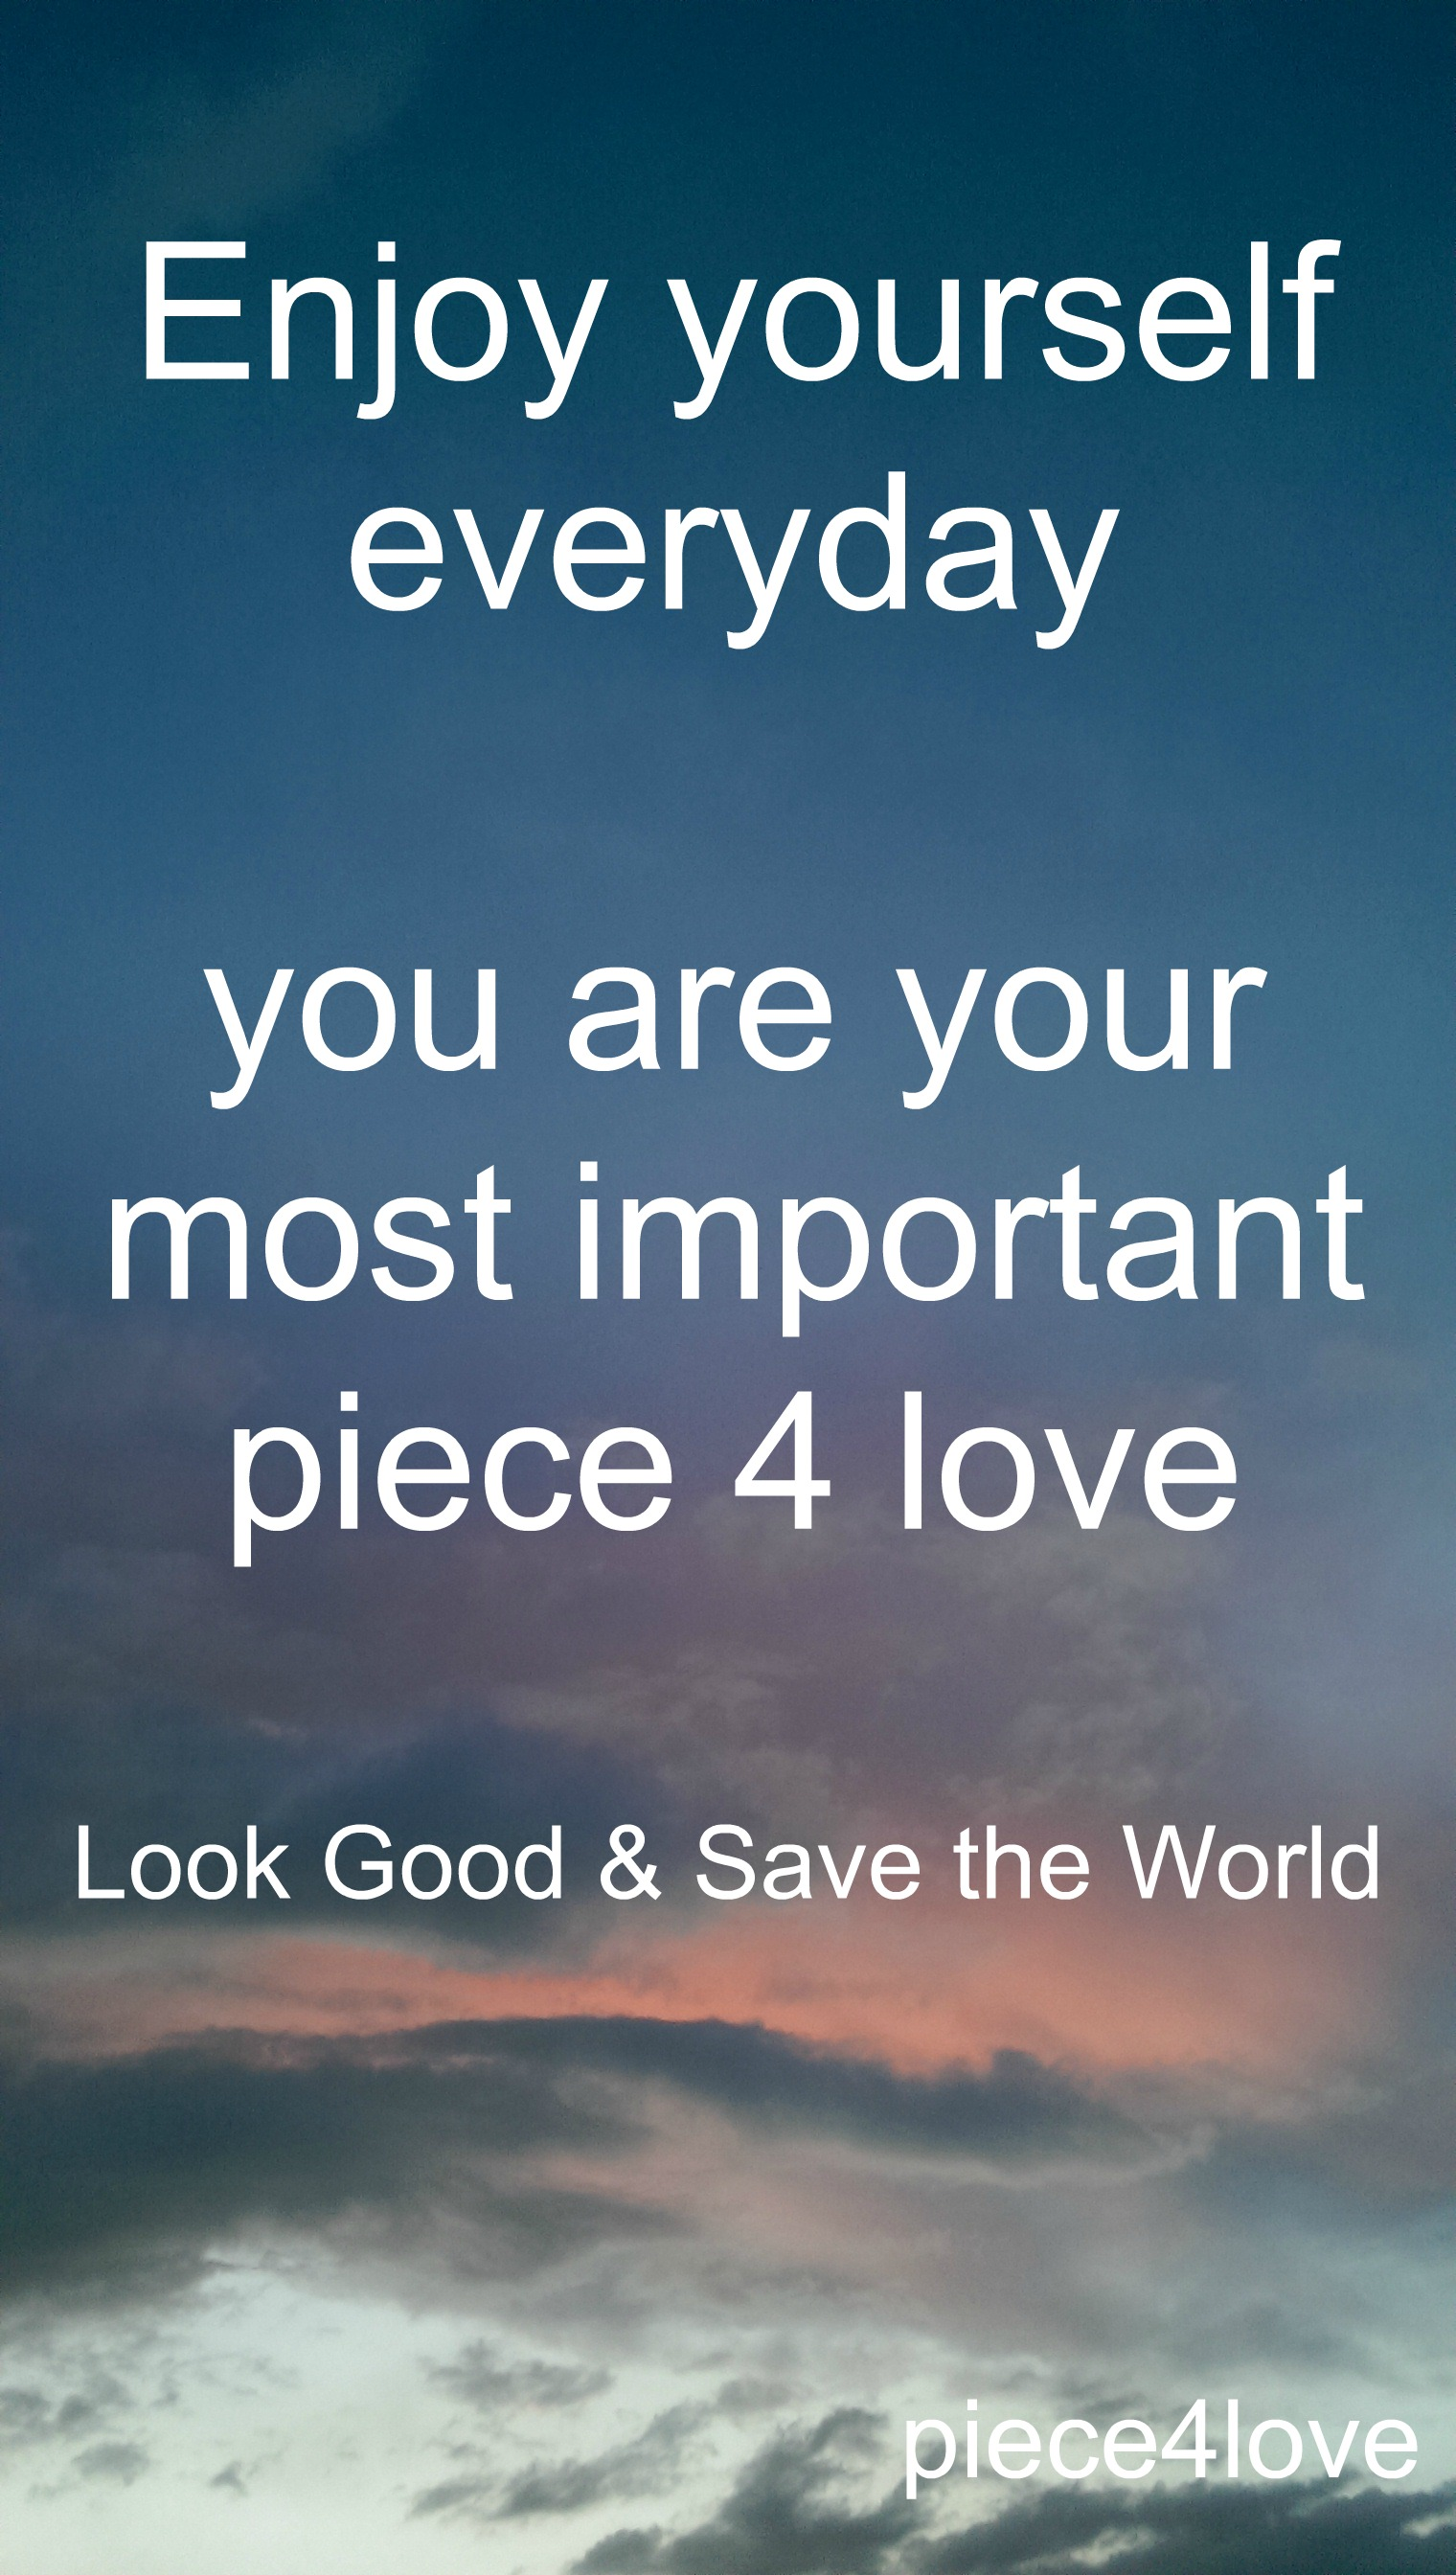 Yourself, piece4love, look good & save the world